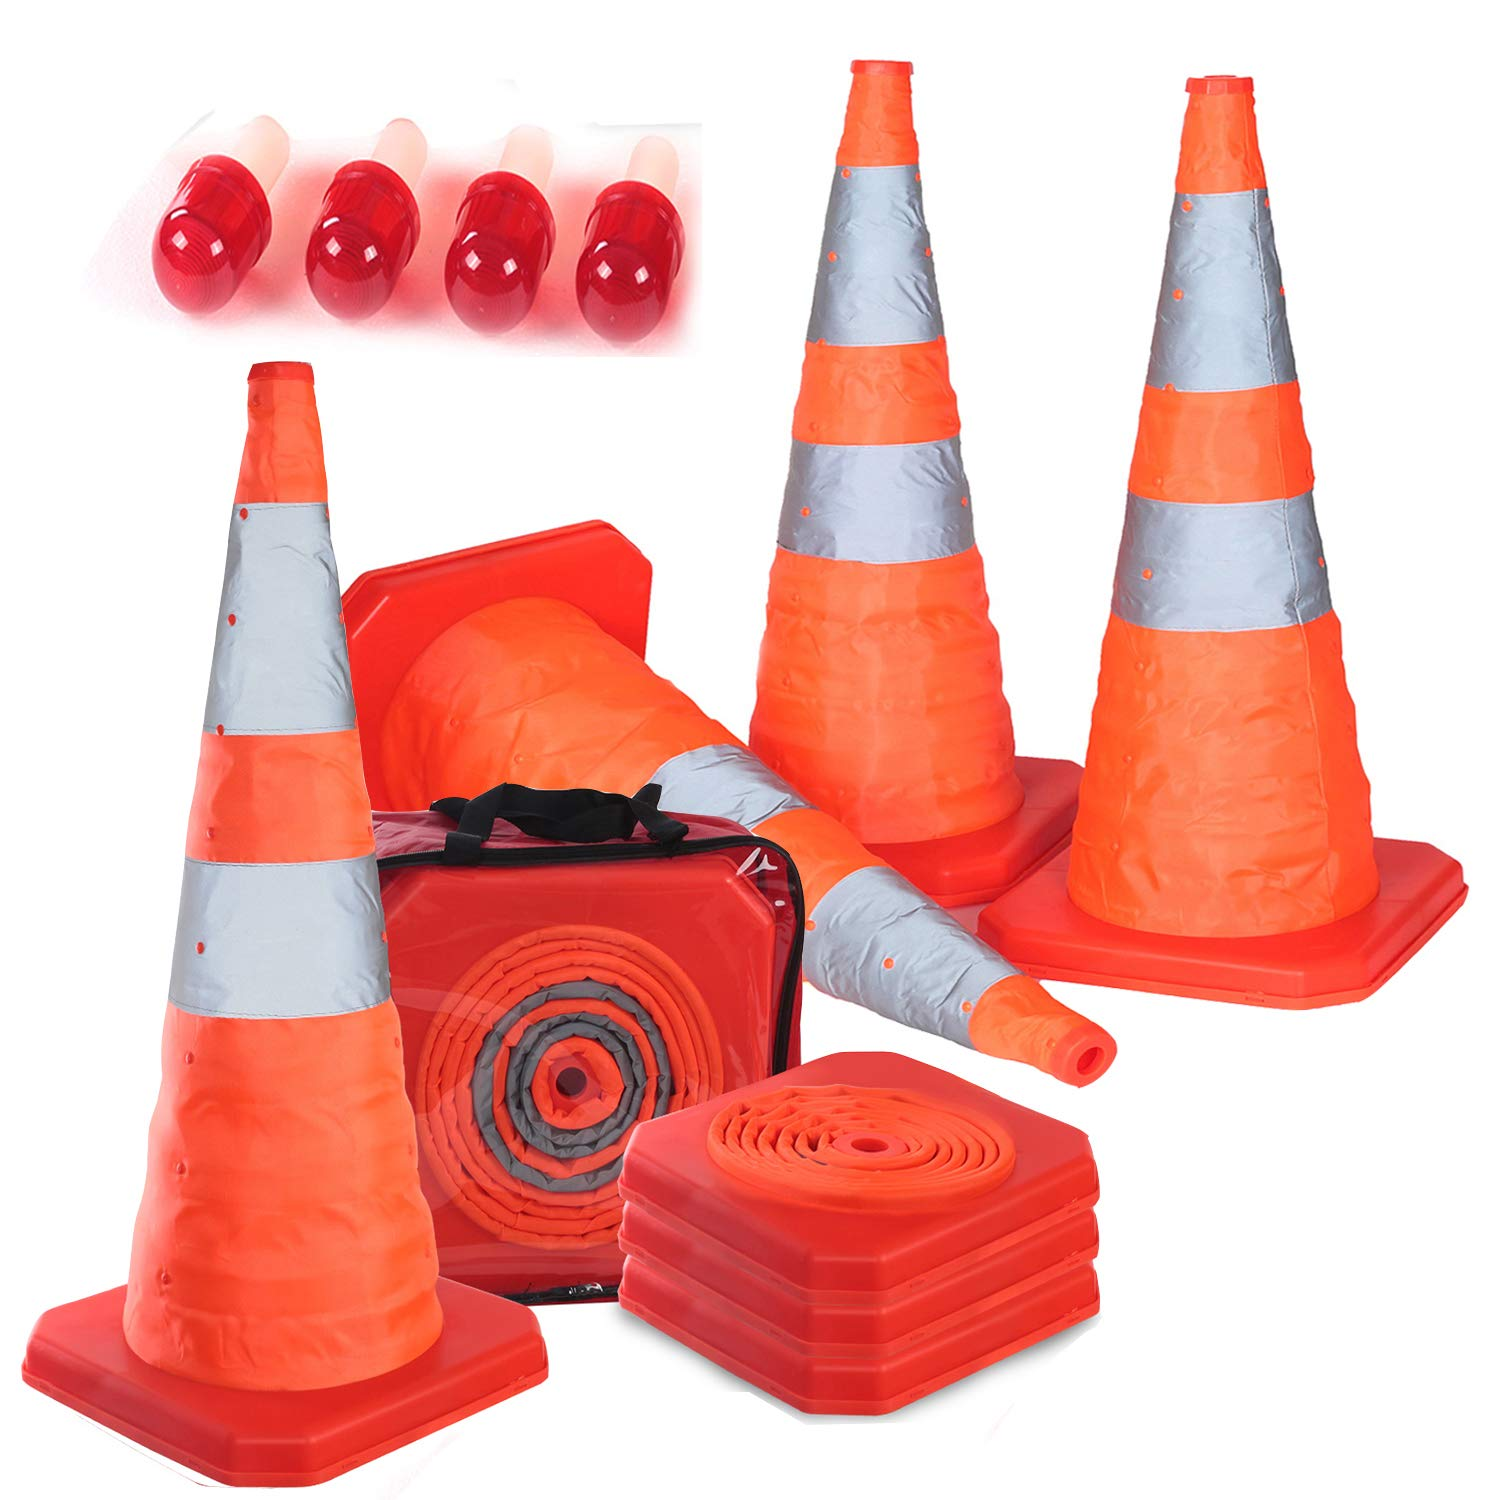 Reliancer 4PC 27.6'' Collapsible Traffic Cones with Nighttime LED Lights Pop up Safety Road Parking Cones Weighted Hazard Cones Construction cones Fluorescent Orange w/2 Reflective Silver Strips Collar by Reliancer